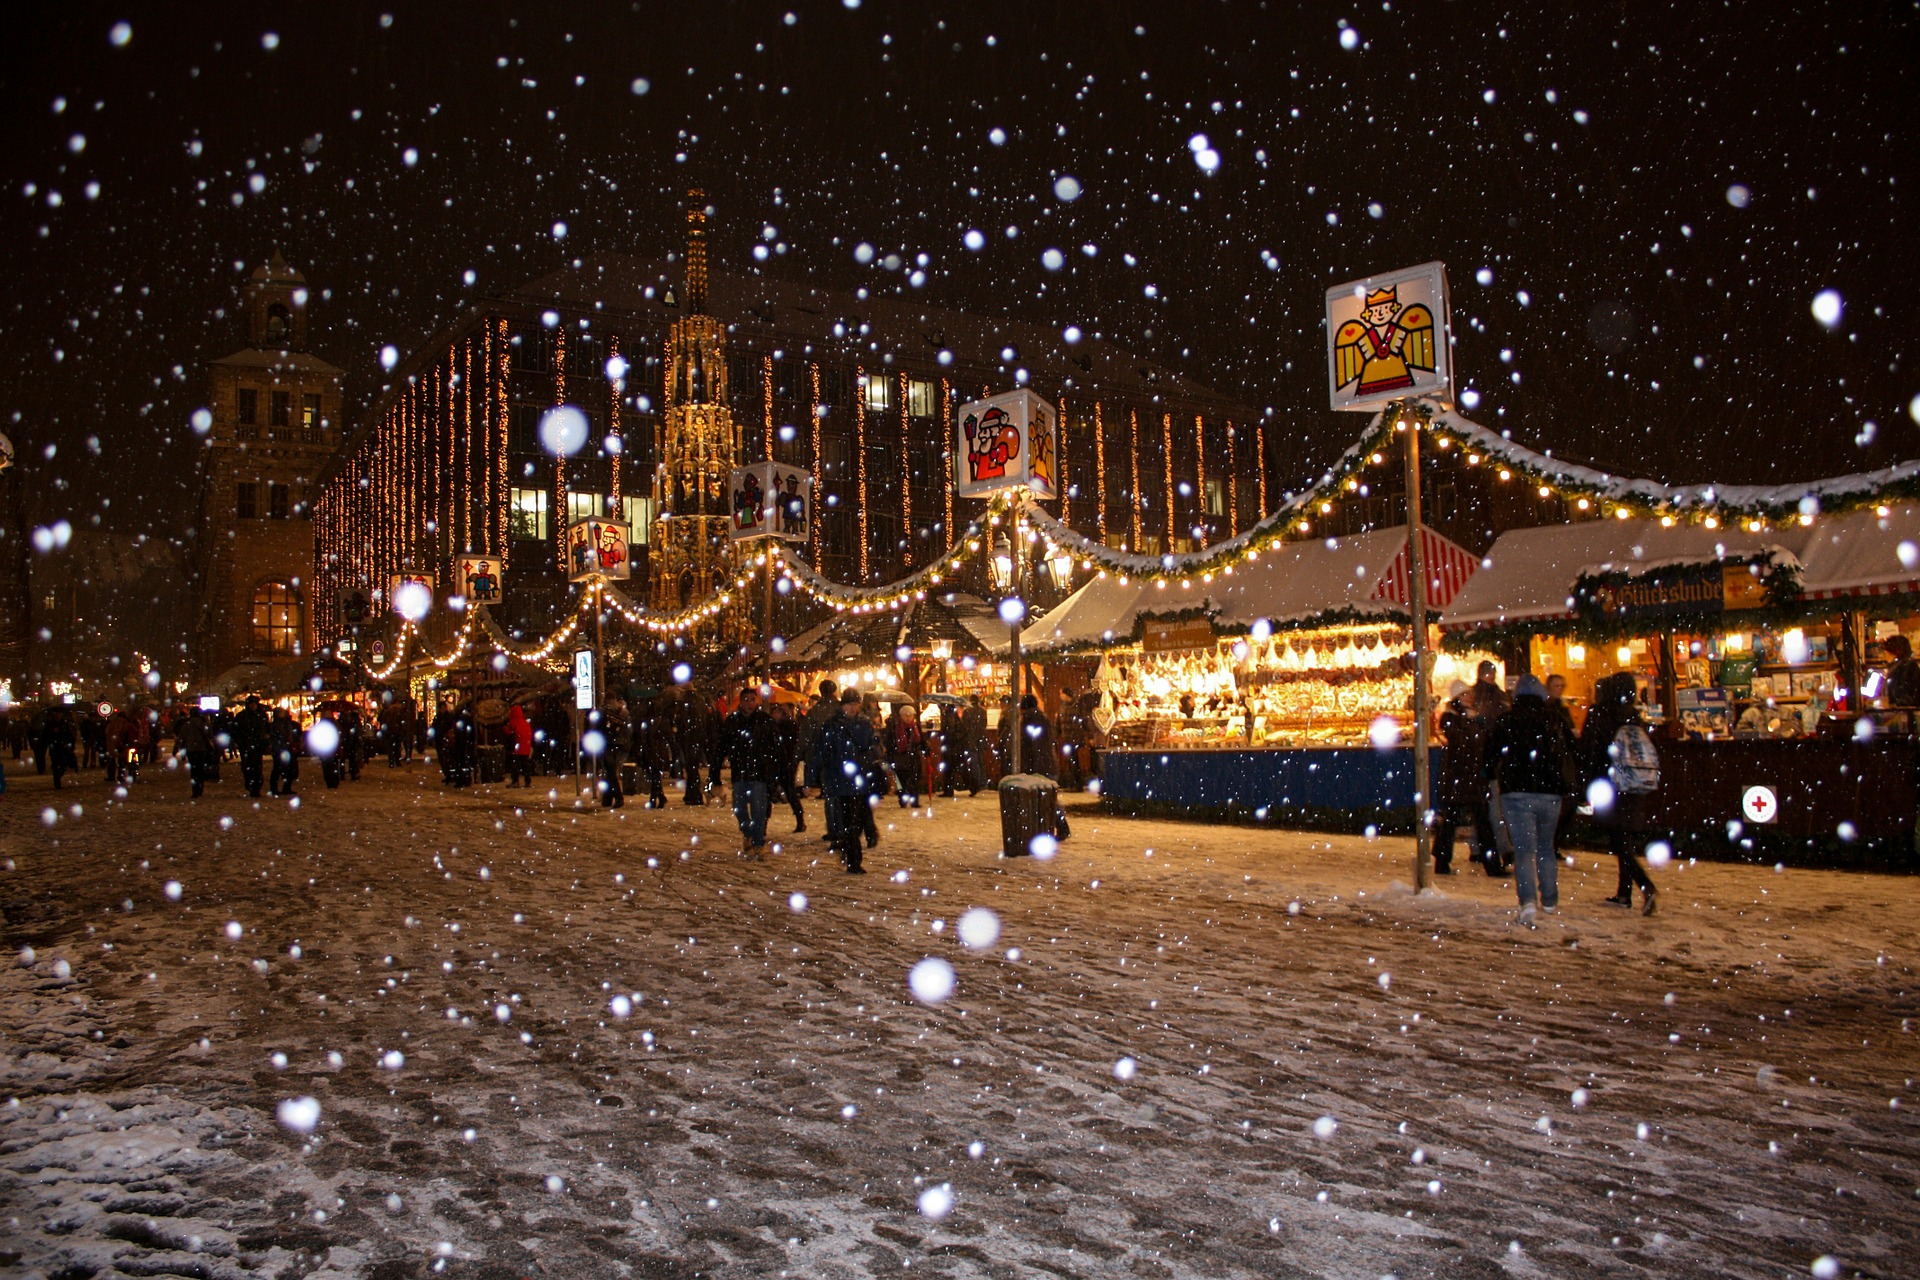 Image of a Christmas Market in Europe